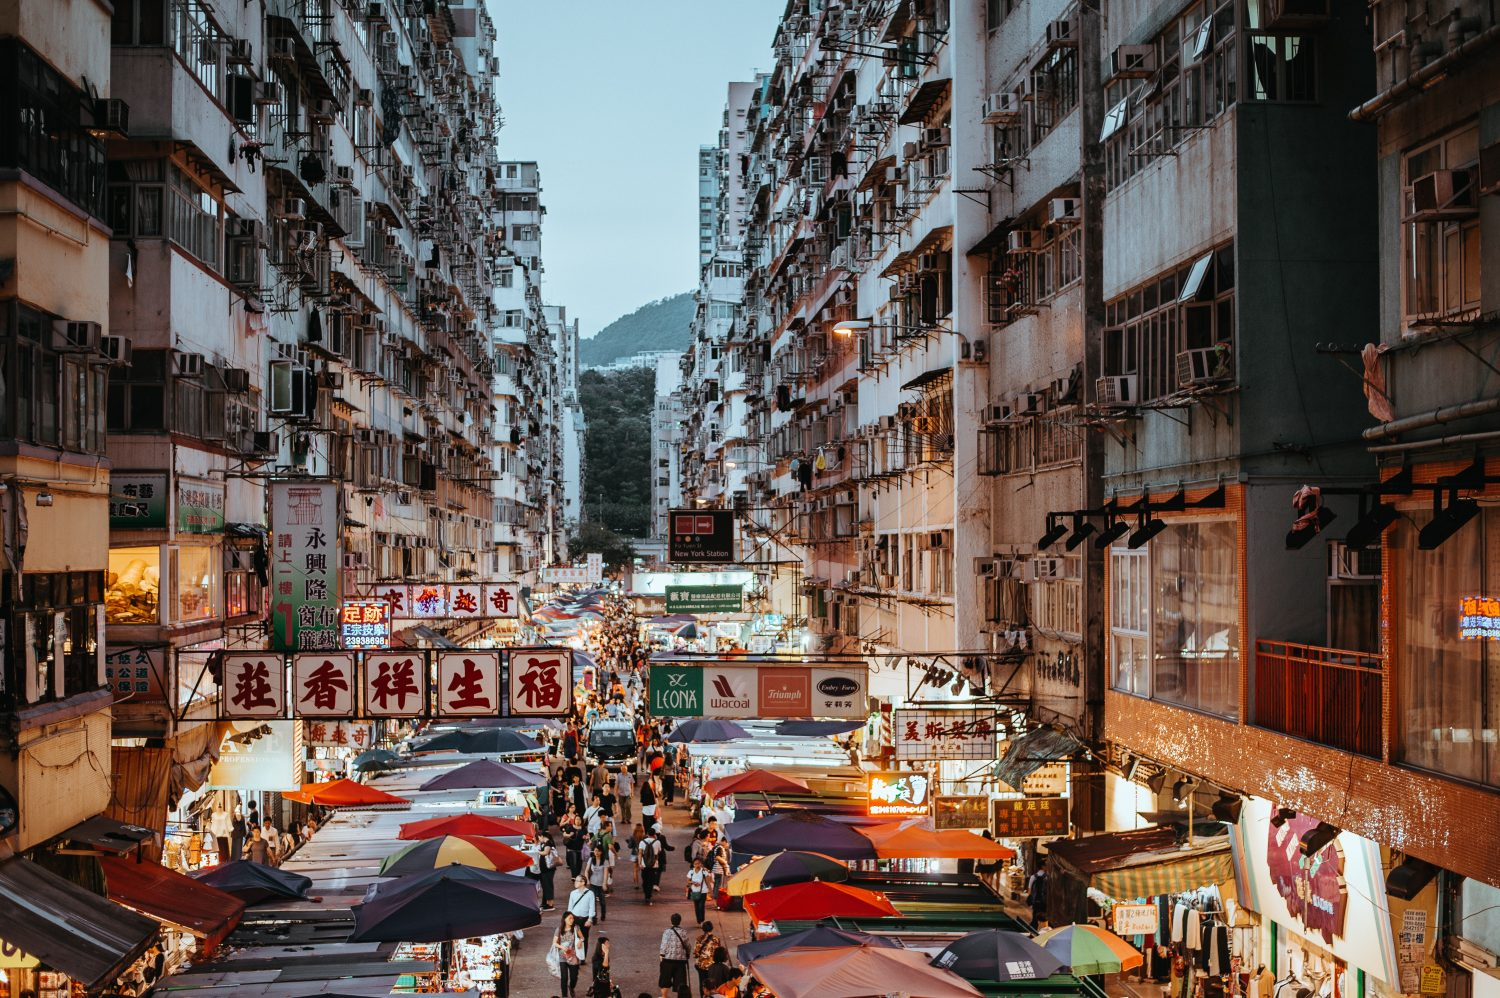 An AMAZING Hong Kong guide packed with Hong Kong travel tips and recommendations on things to do in Hong Kong, where to eat and all sorts of important insider information you need to know for your next trip. #HongKong